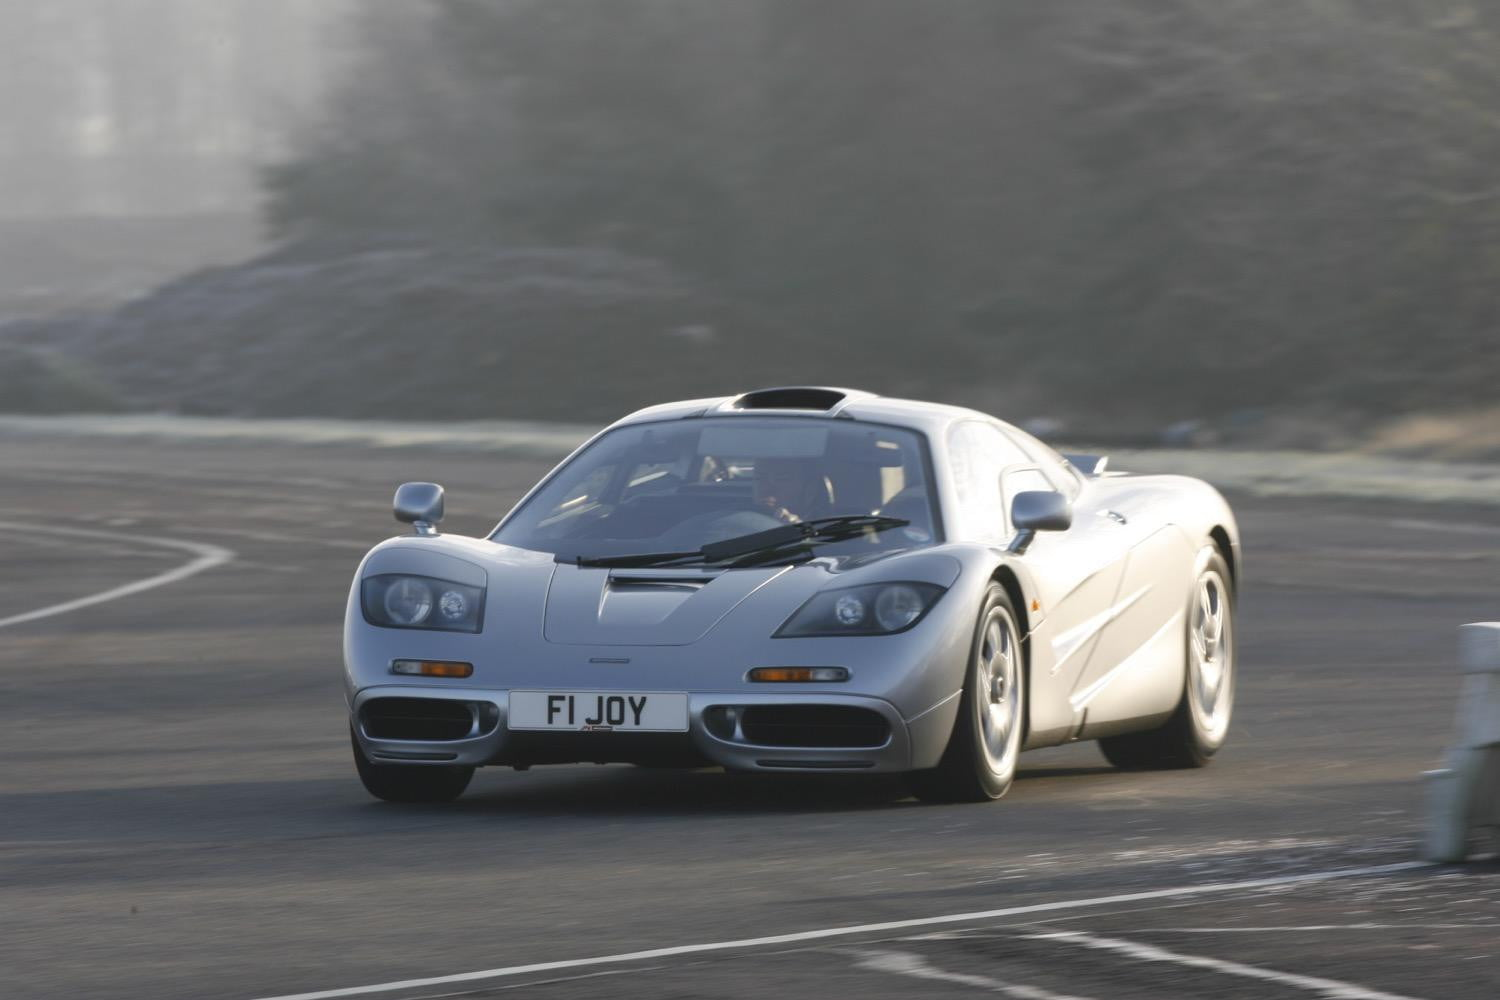 The 25 Fastest Cars In The World